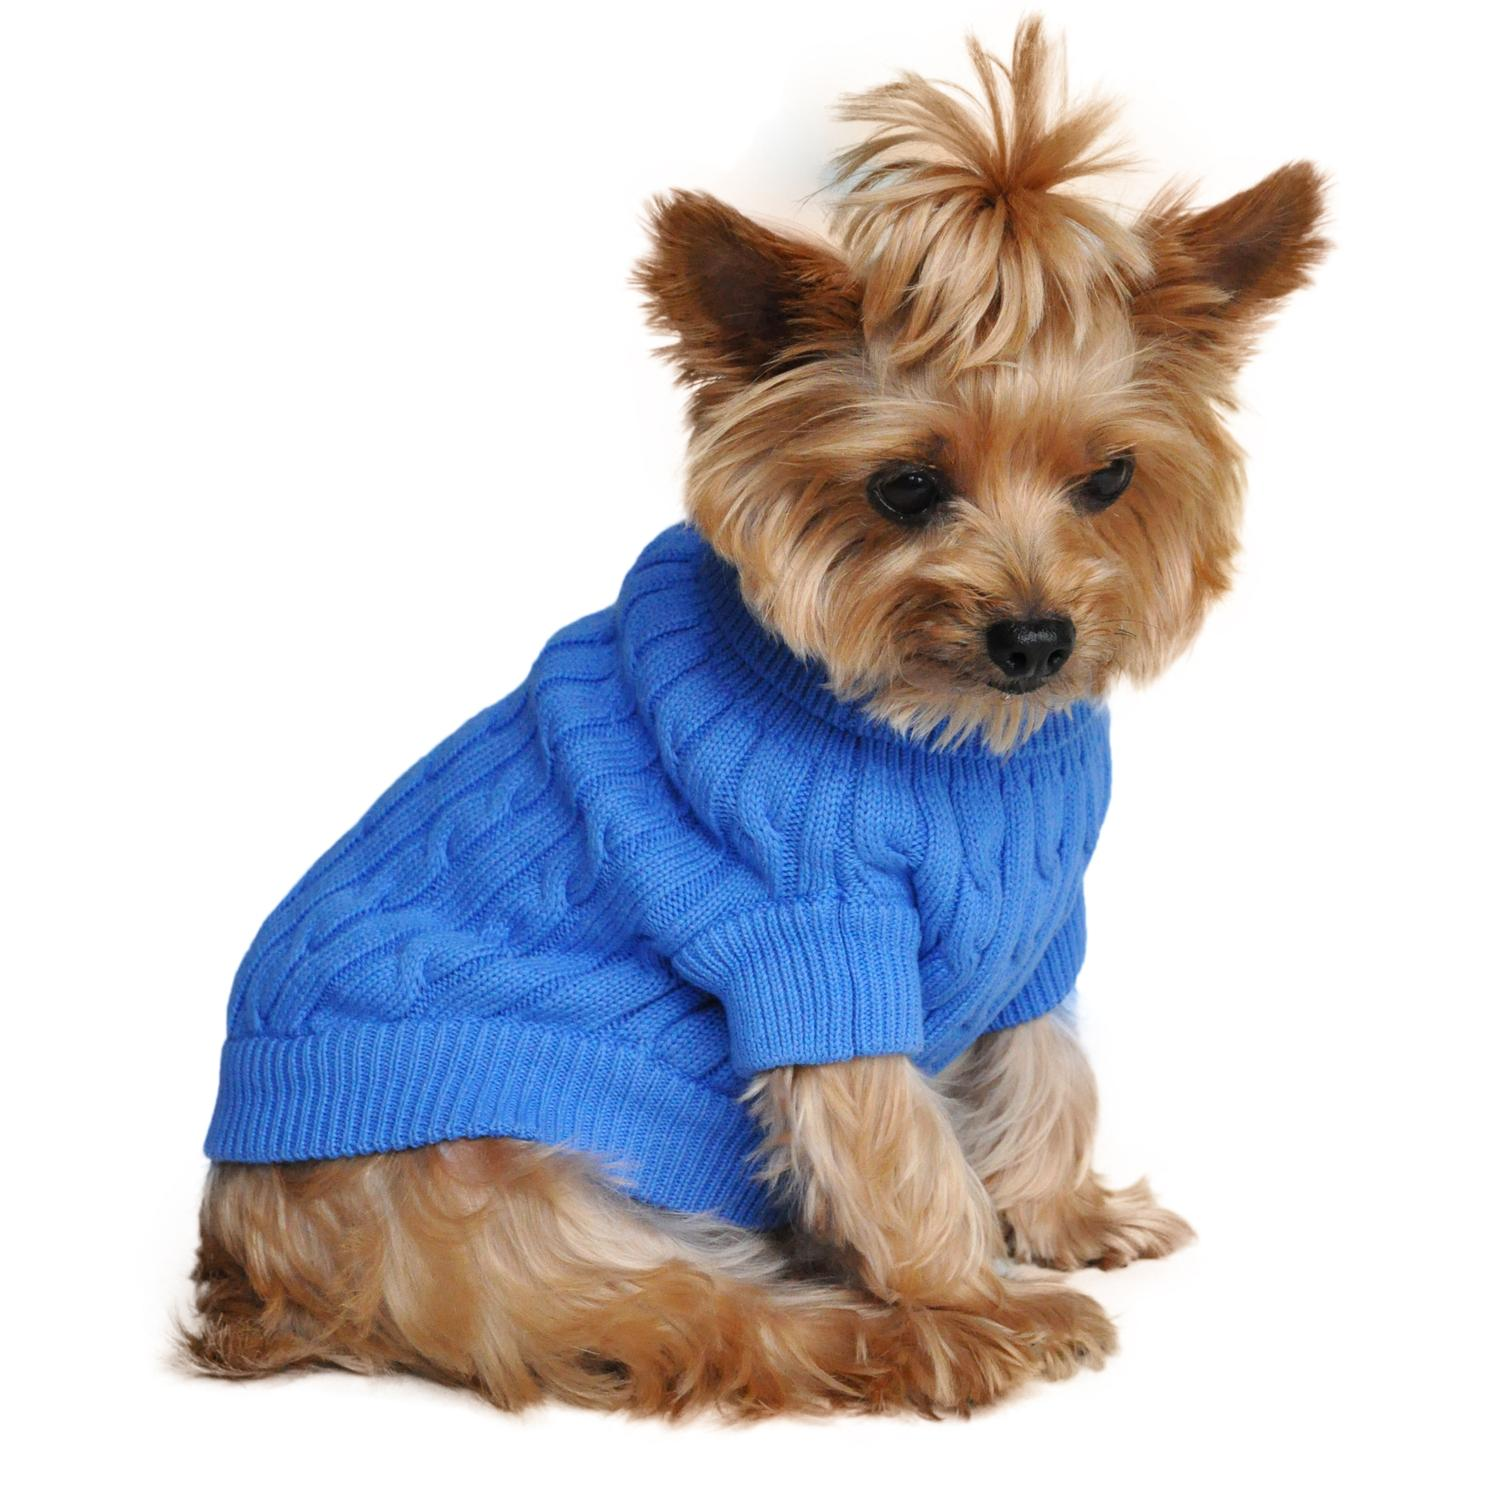 0d9a3dba7afdb9 Cable Knit Dog Sweater by Doggie Design - Riv...